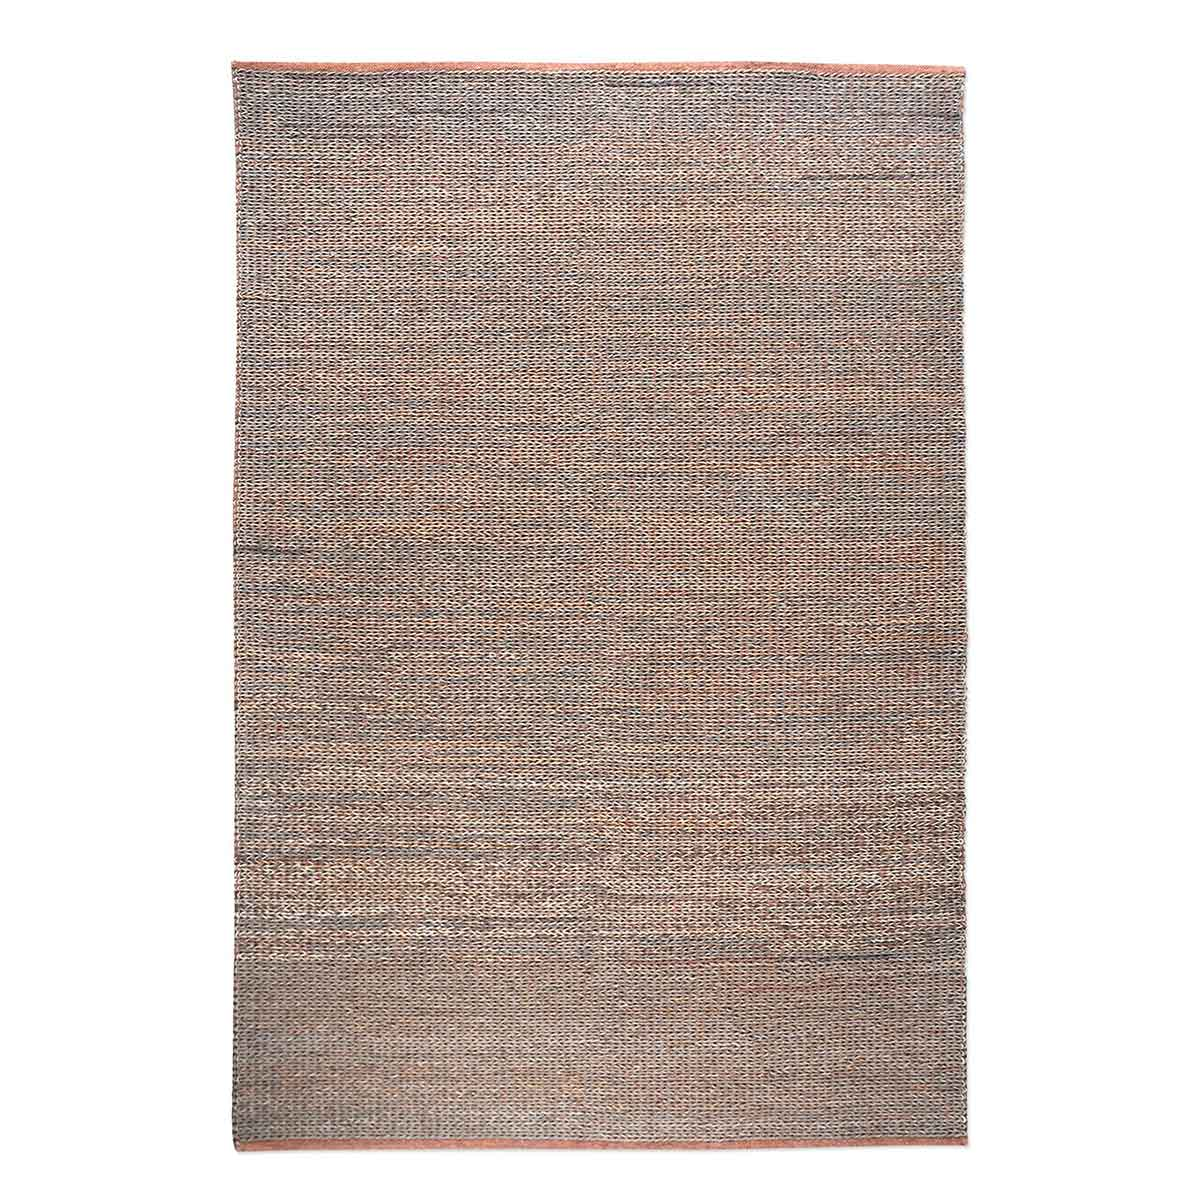 Uttermost Luxor 5 x 8 Rug - Brown